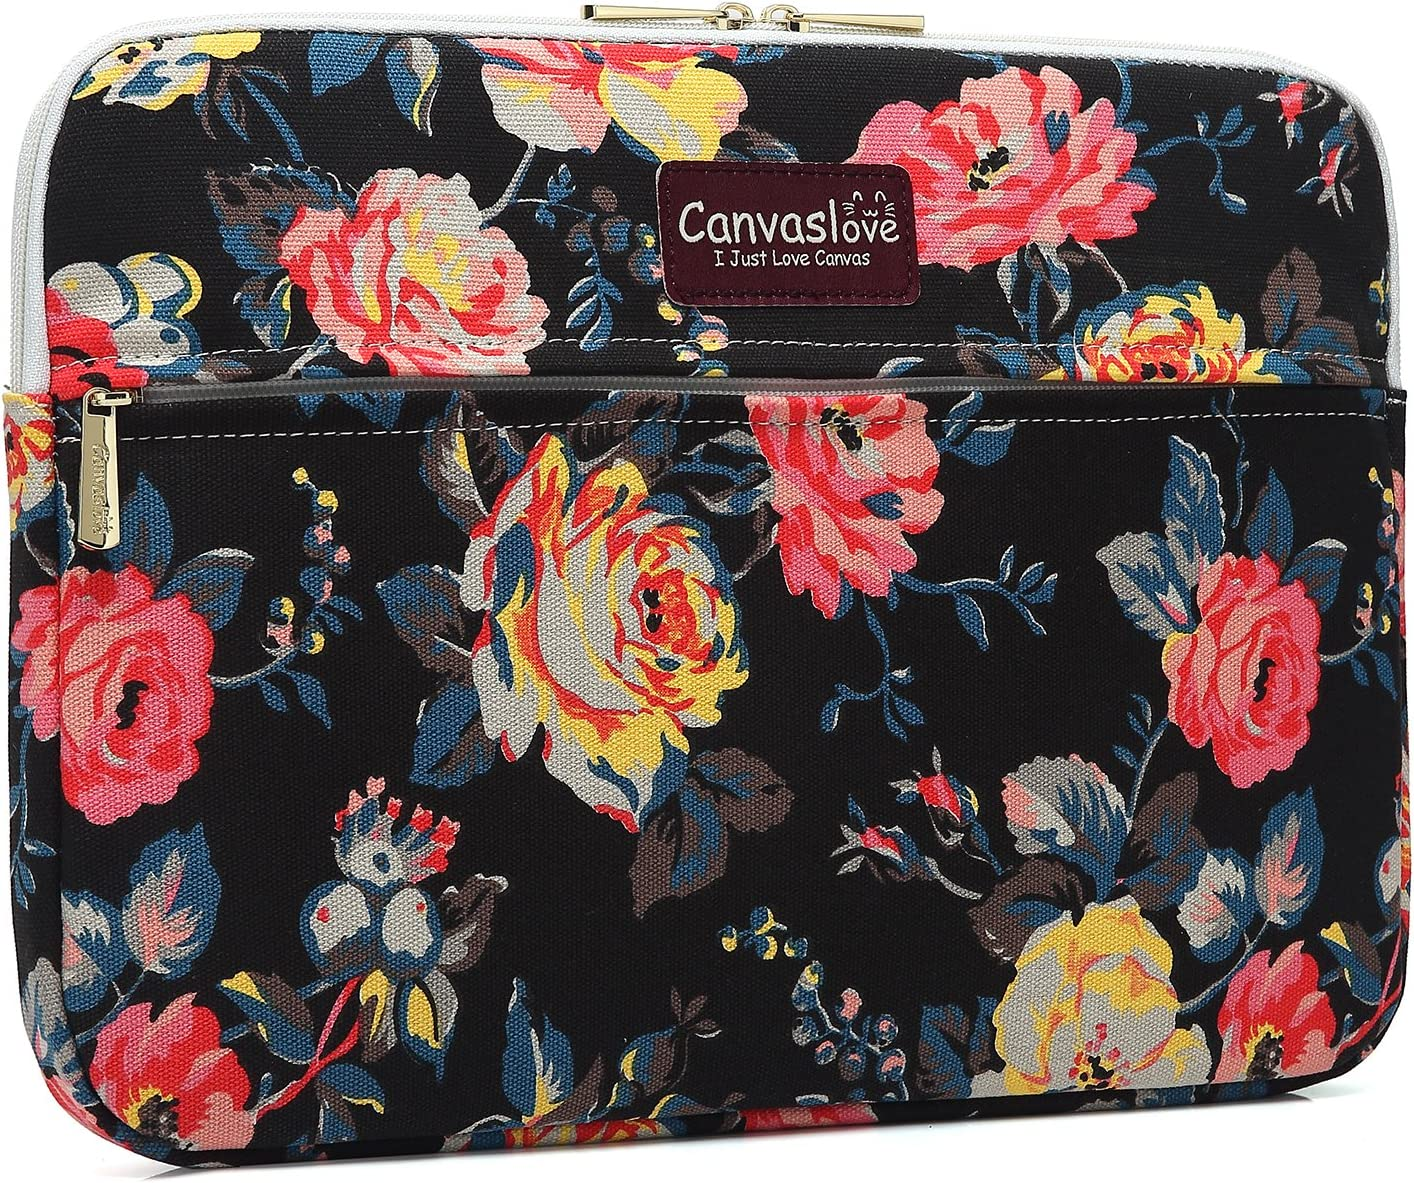 Canvaslove 13 inch Canvas Laptop Sleeve with Pocket 13 inch 13.3 inch Laptop case